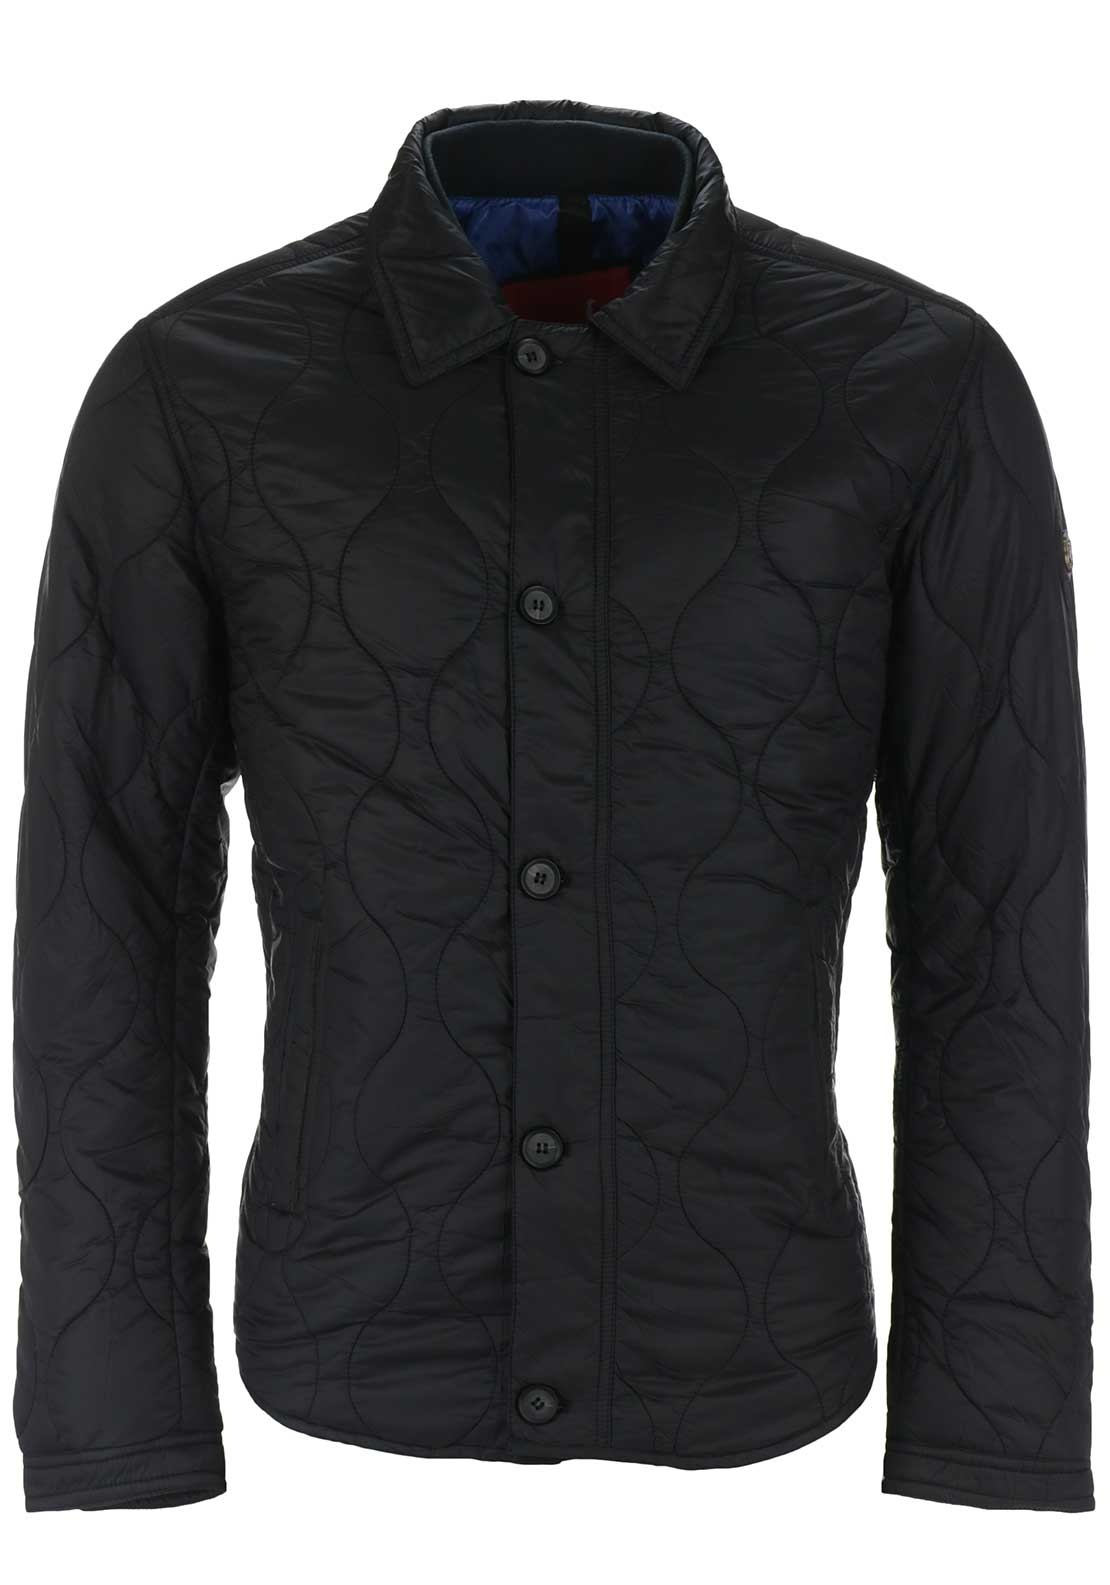 6th Sense Mens Carey Fashion Puffa Jacket, Black